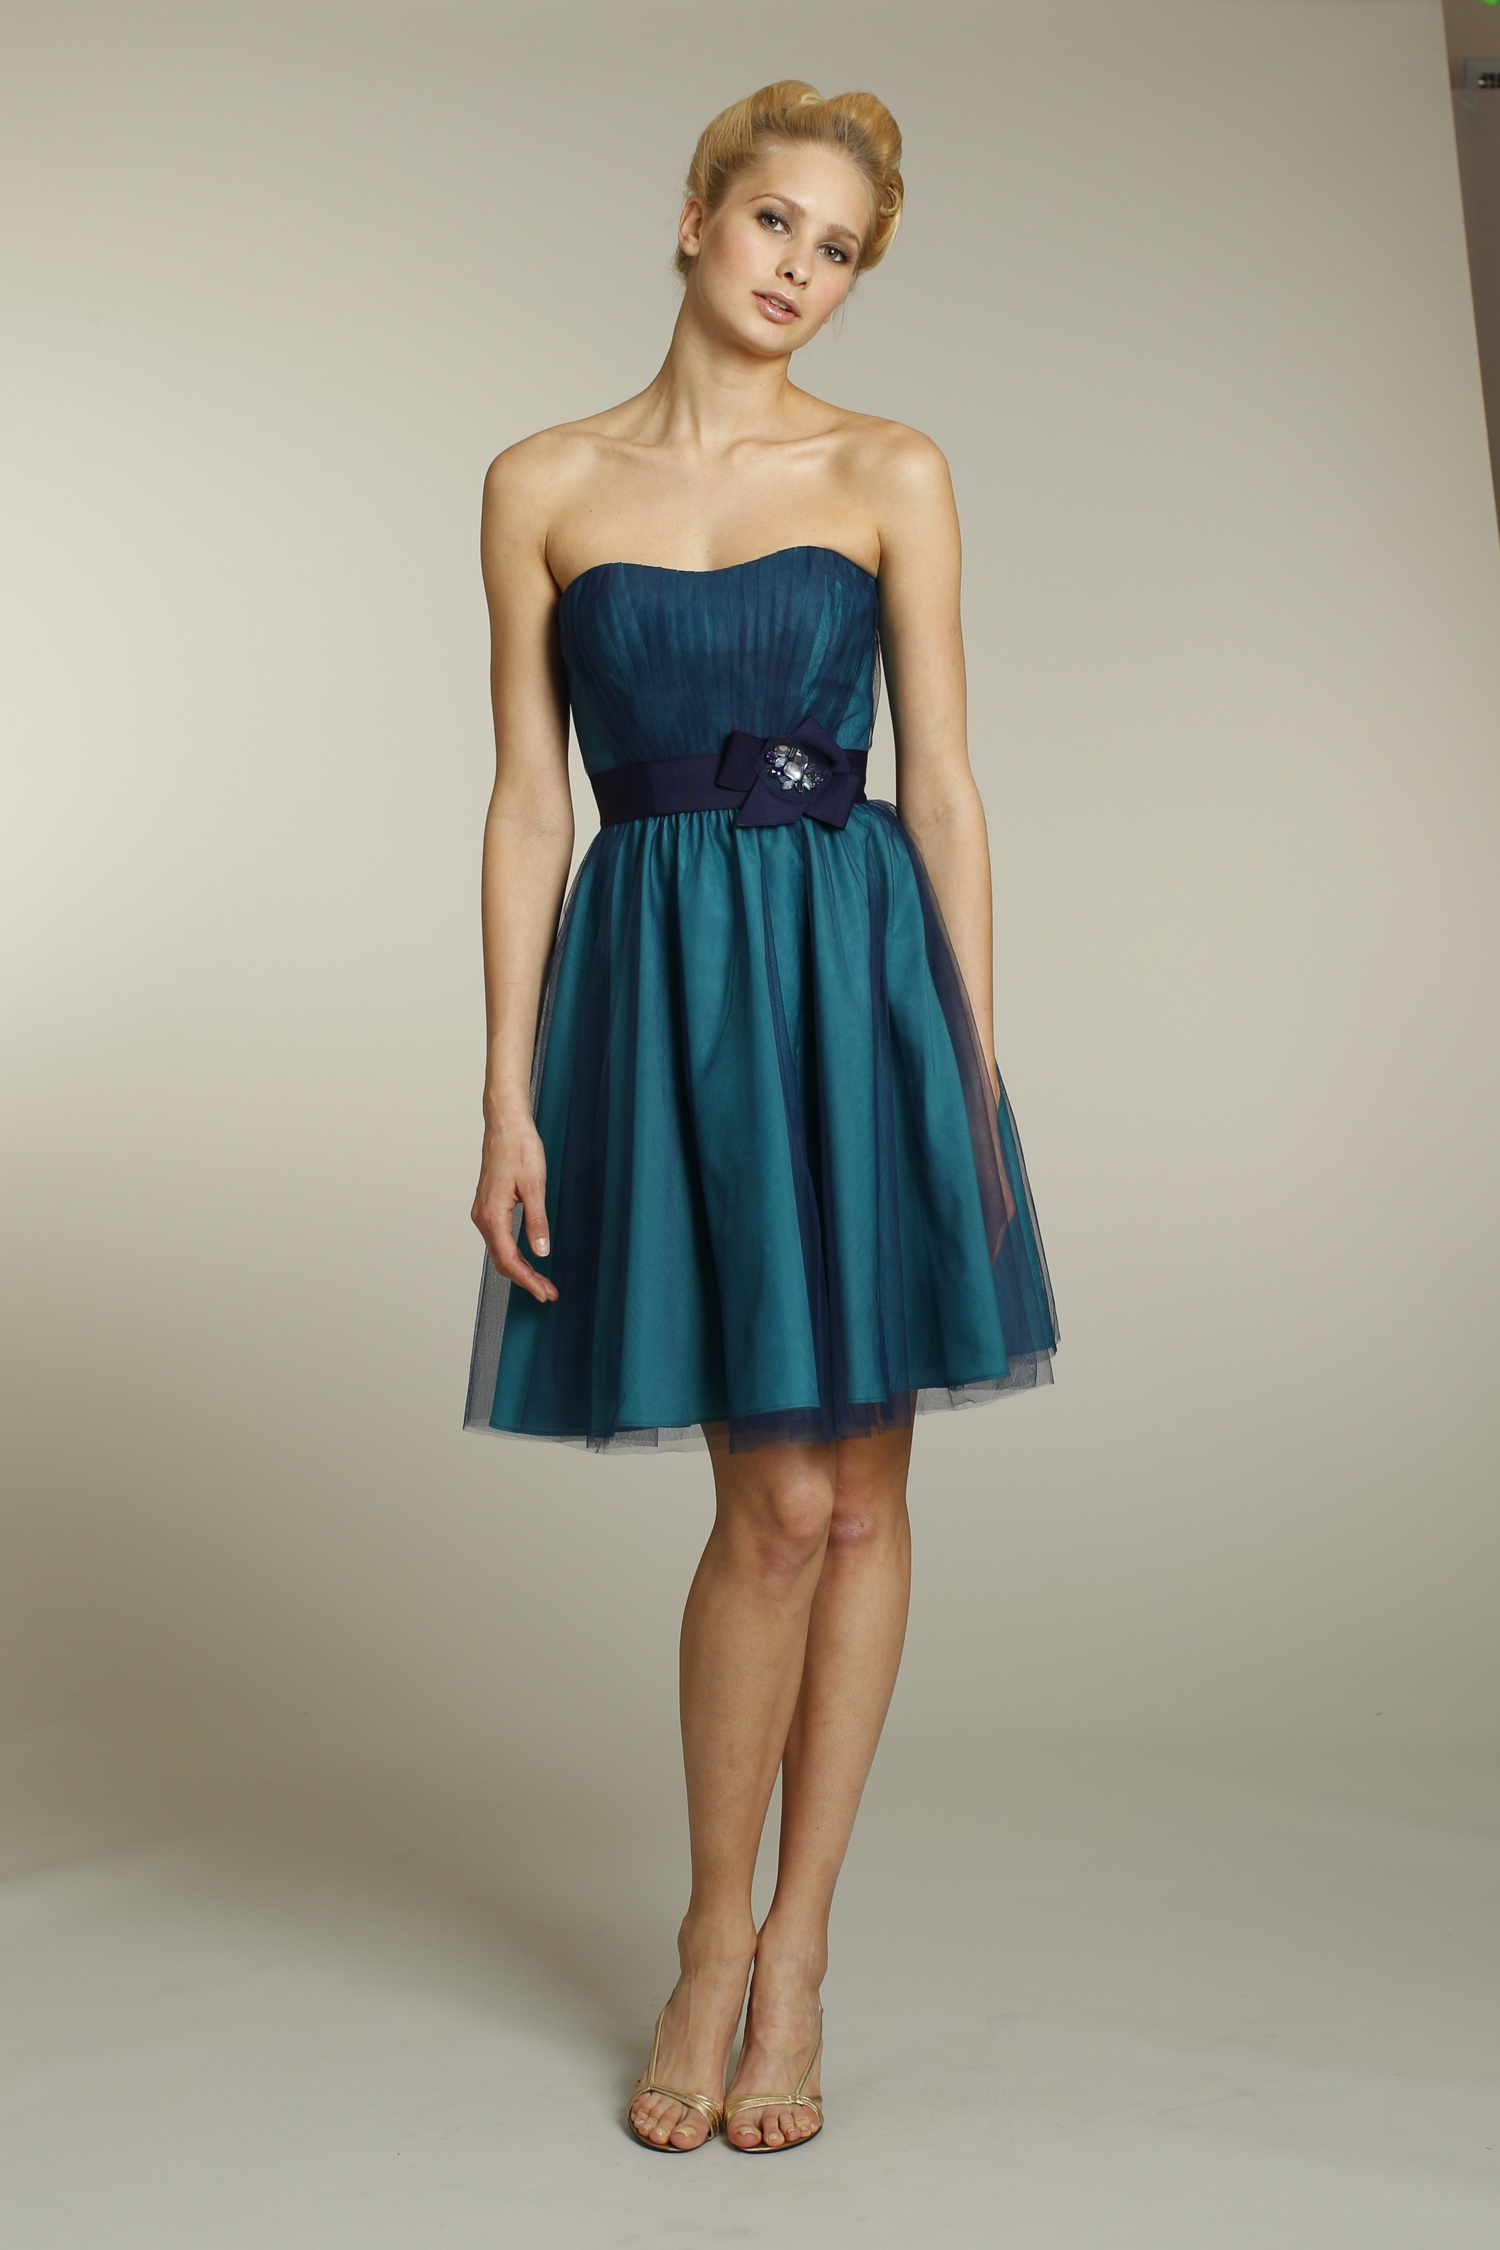 Bridesmaid dresses 2013 with sleeves uk purple 2014 teal teal bridesmaid dresses ombrellifo Images